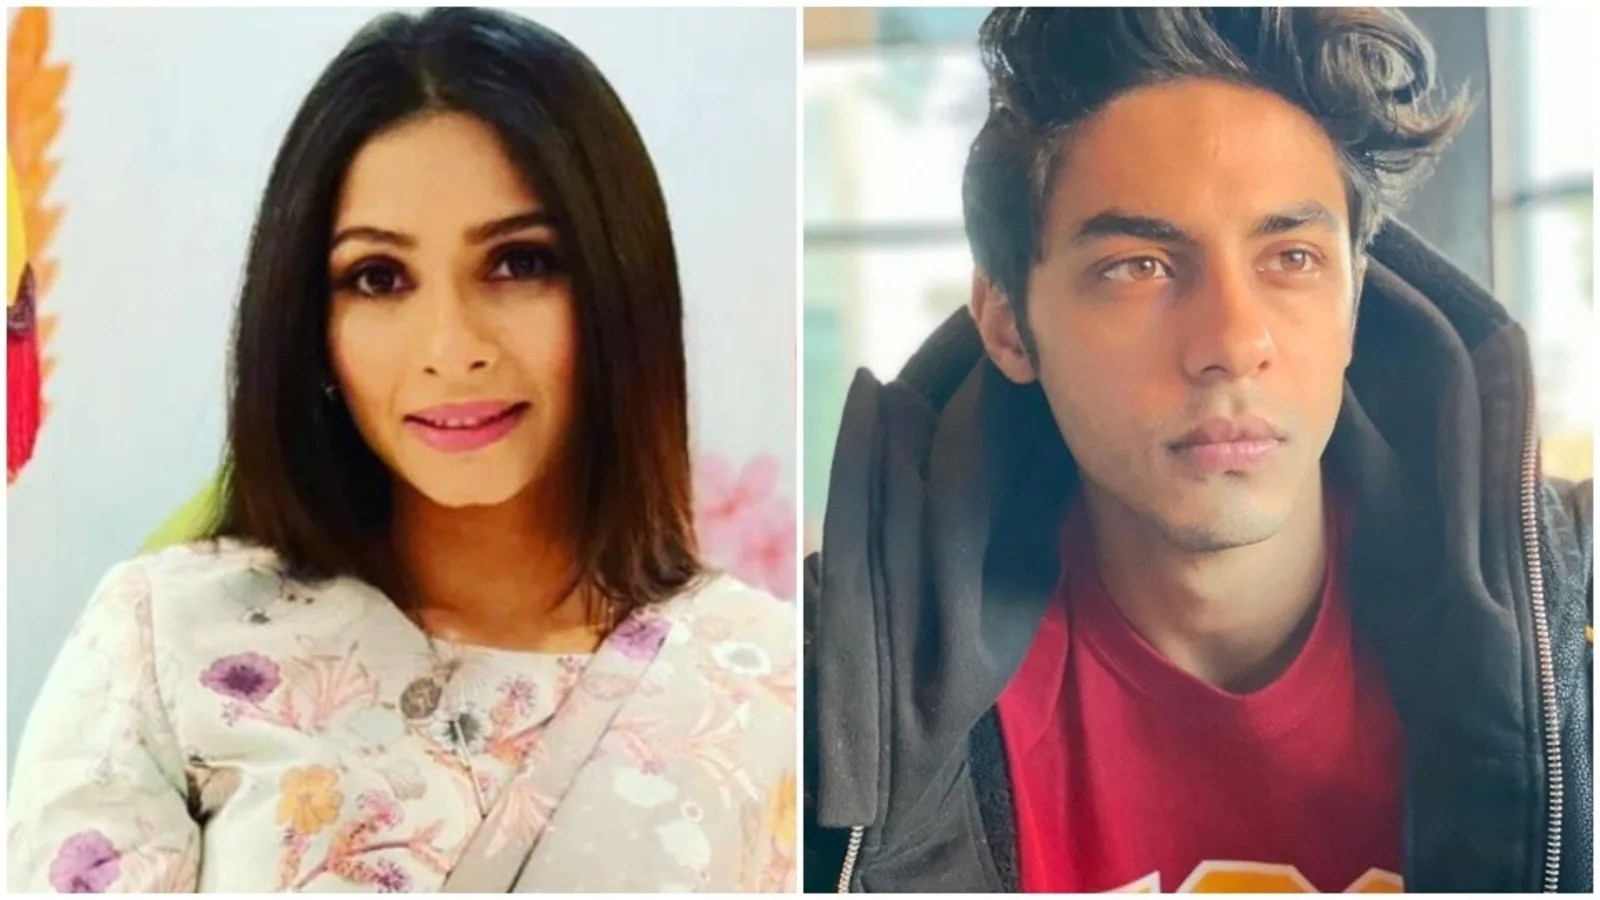 Tanishaa Mukerji calls Aryan Khan's case harassment, wants him freed: 'People have become callous towards our stars'